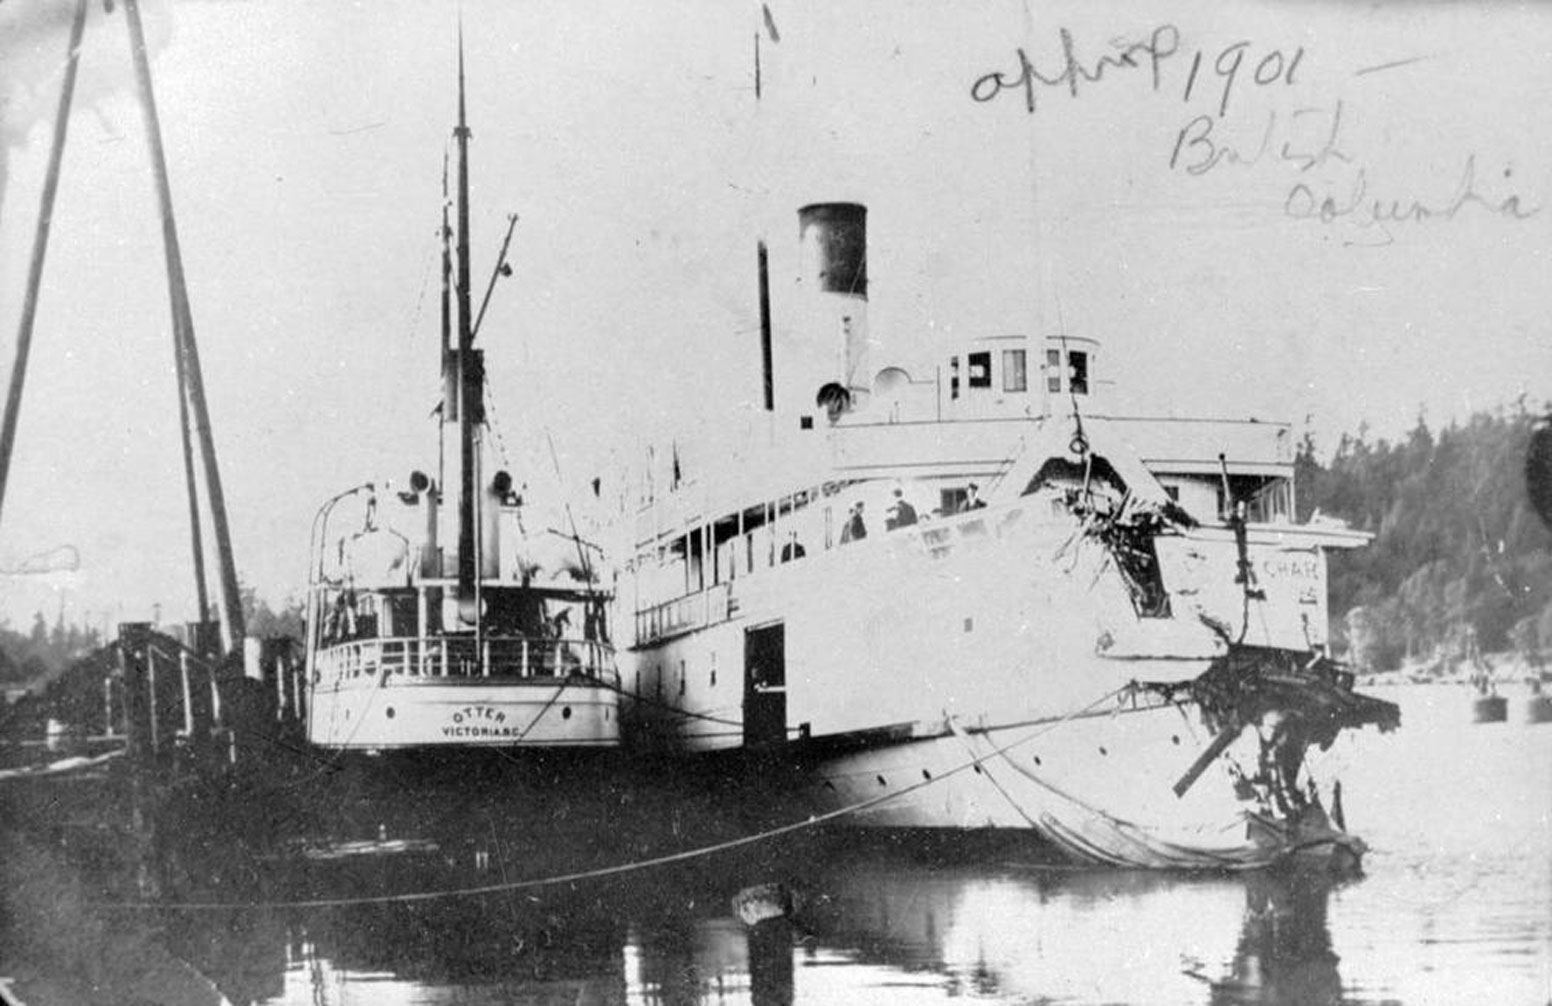 The SS Otter and the SS Charmer docked in Nanaimo, circa 1901. George Thomson Leitch was Chief Engineer on the Otter. (BC Archives photo C-07500)